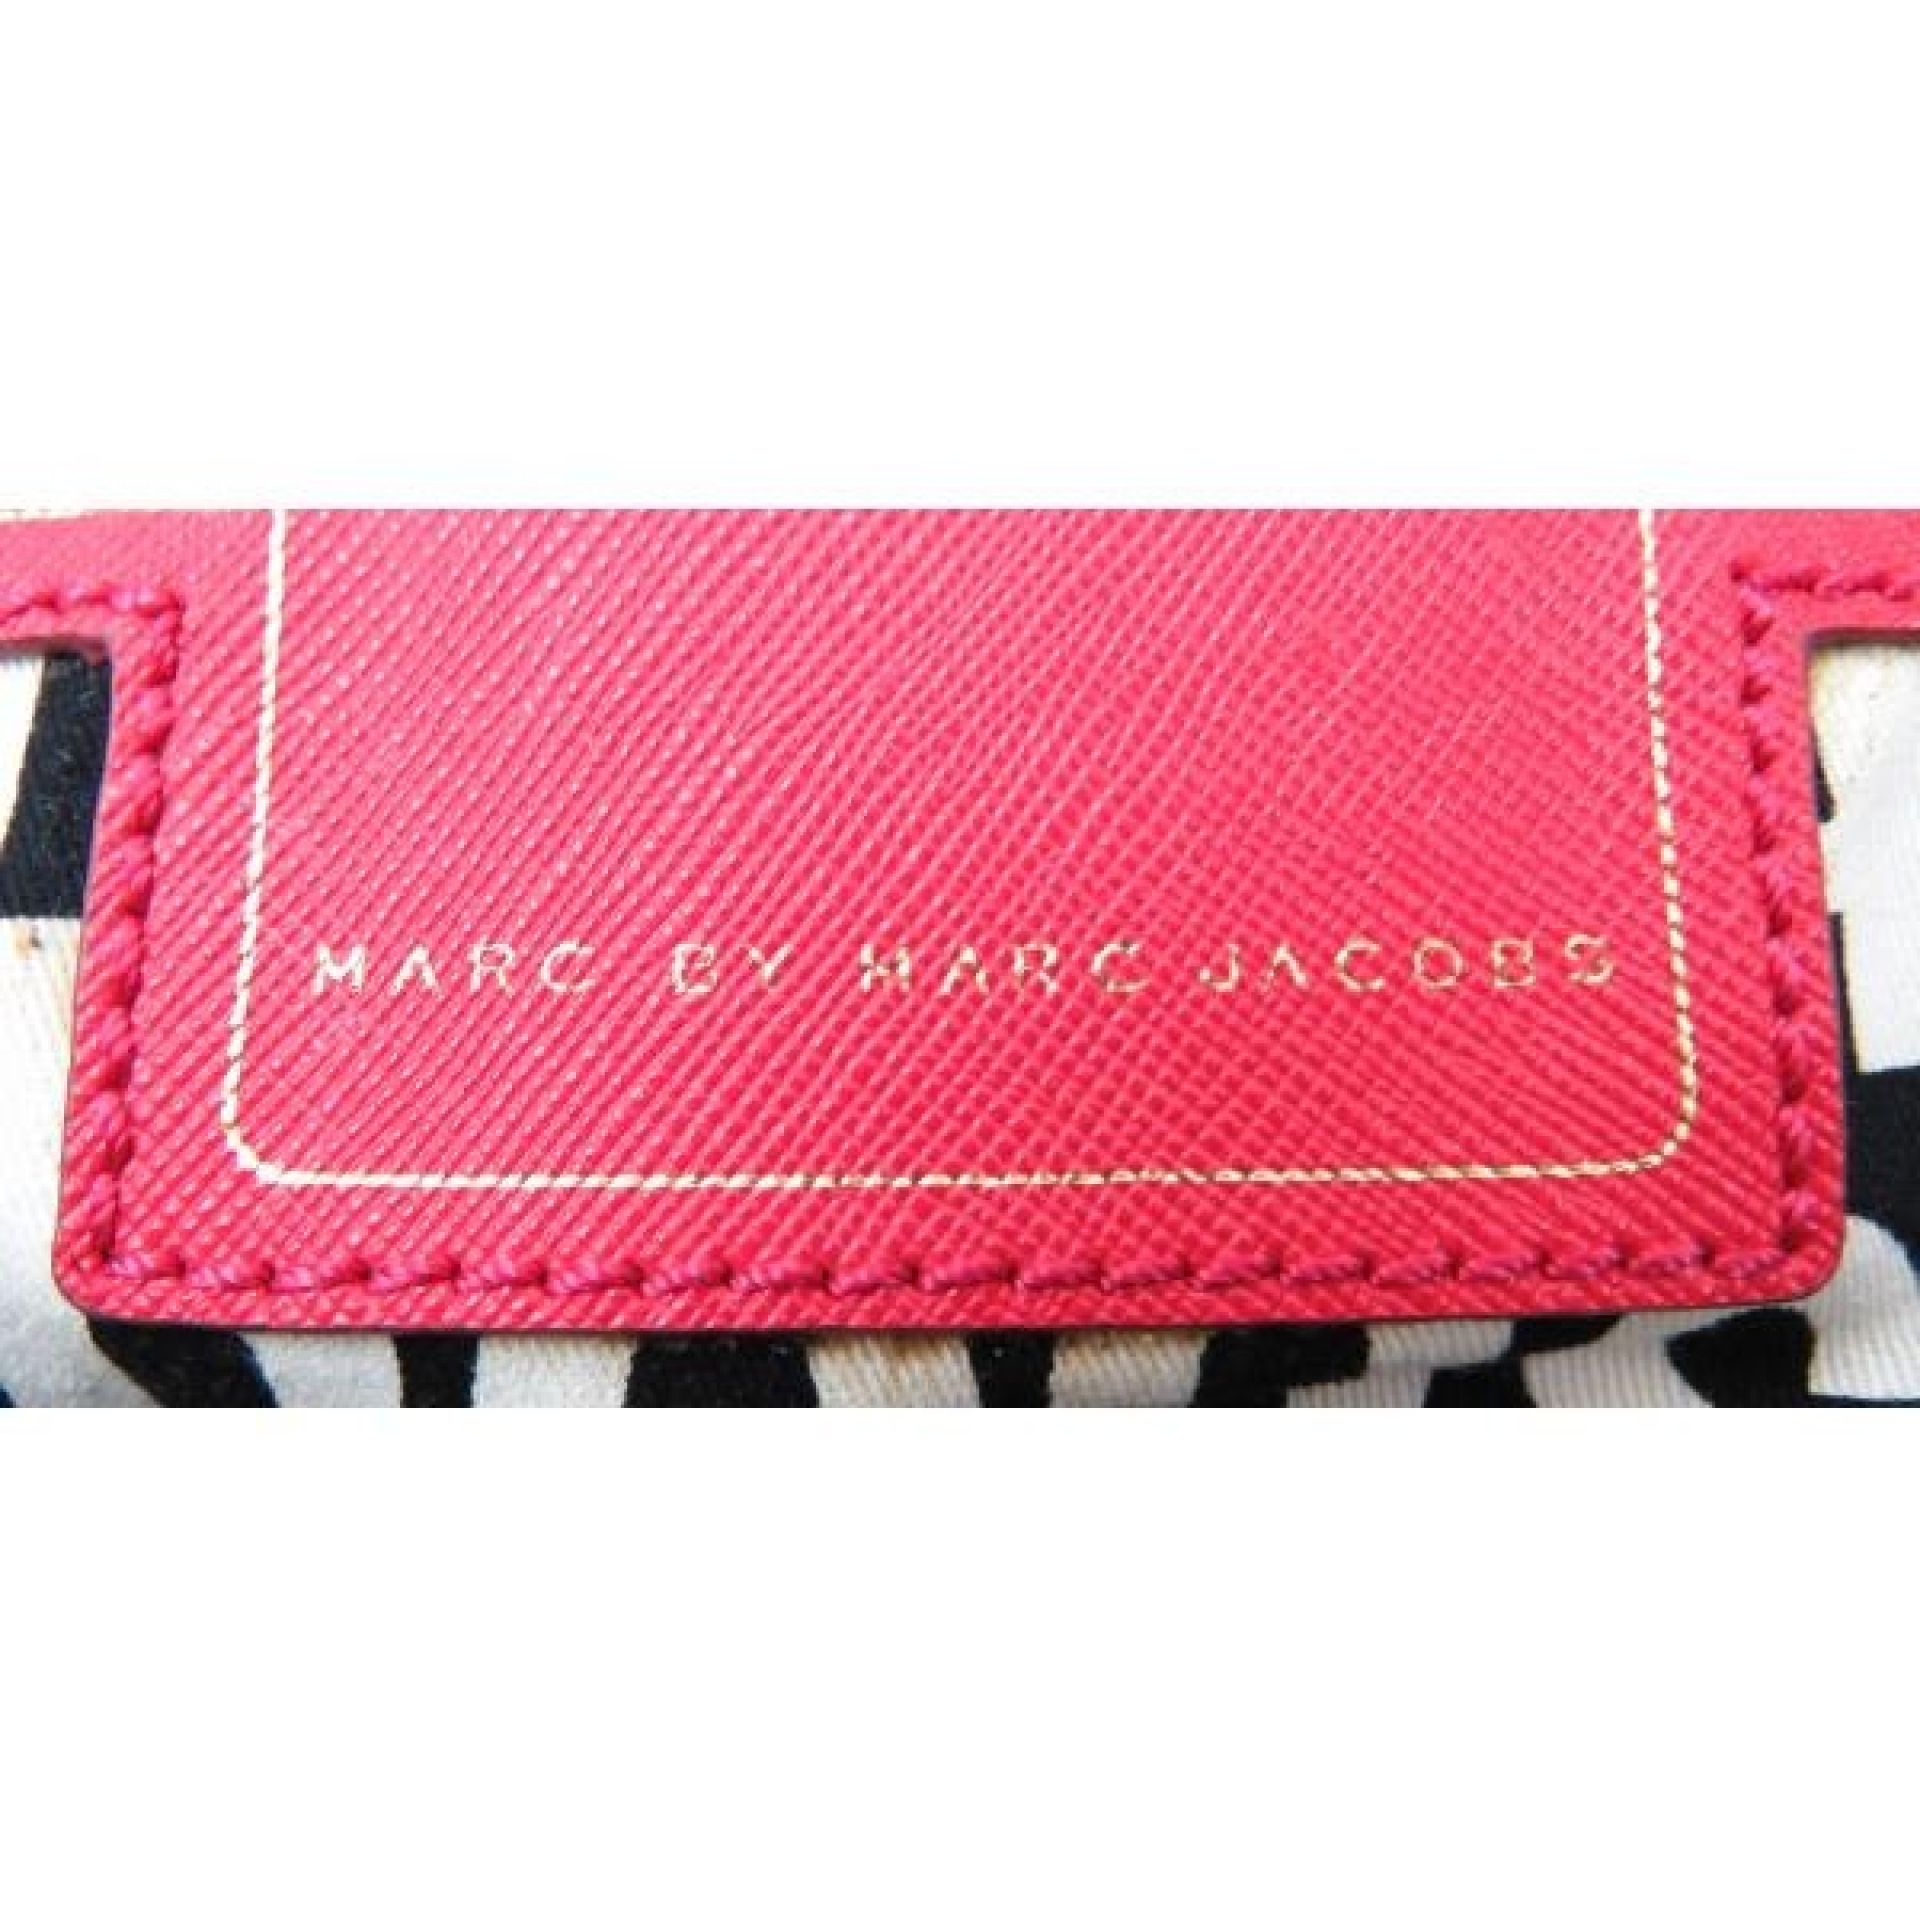 Marc by Marc Jacobs Pink Saffiano Leather Classic Shopper Tote Bag